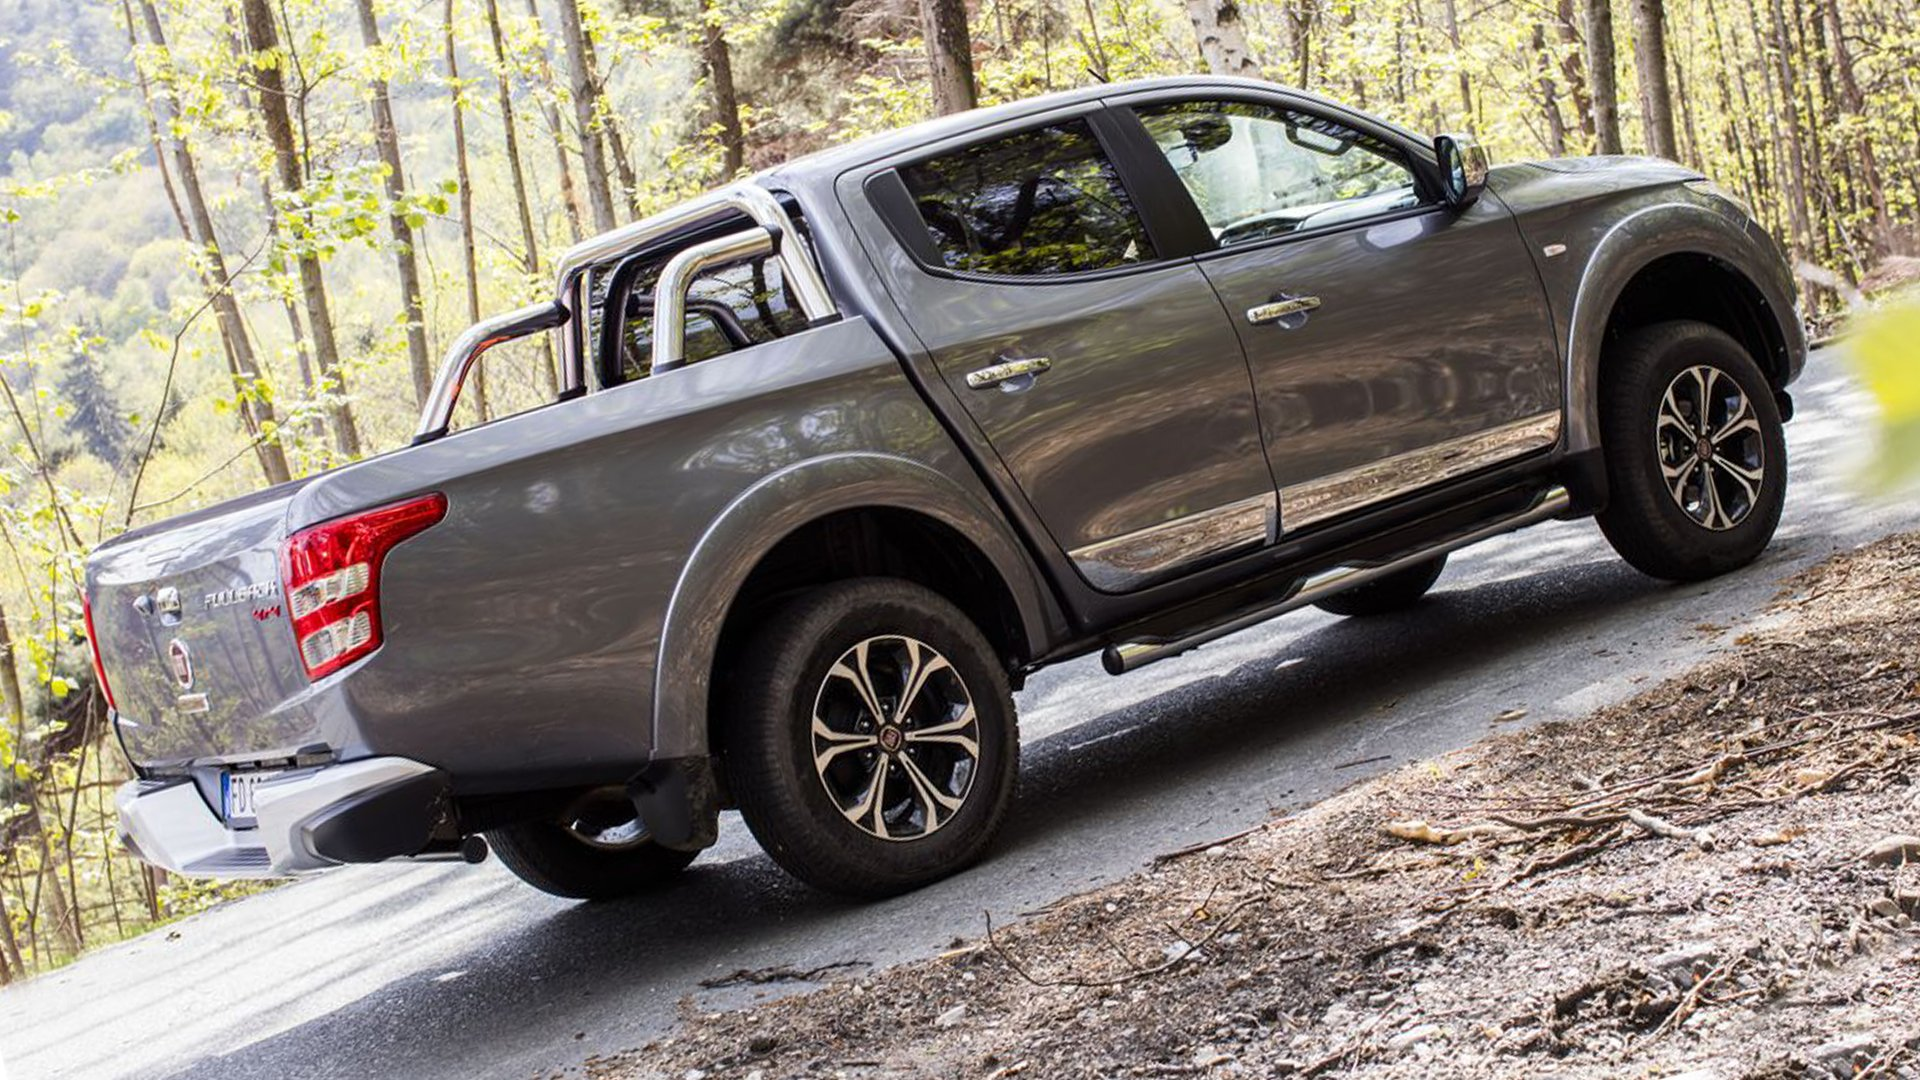 New 2019 Fiat Fullback Exterior Changes